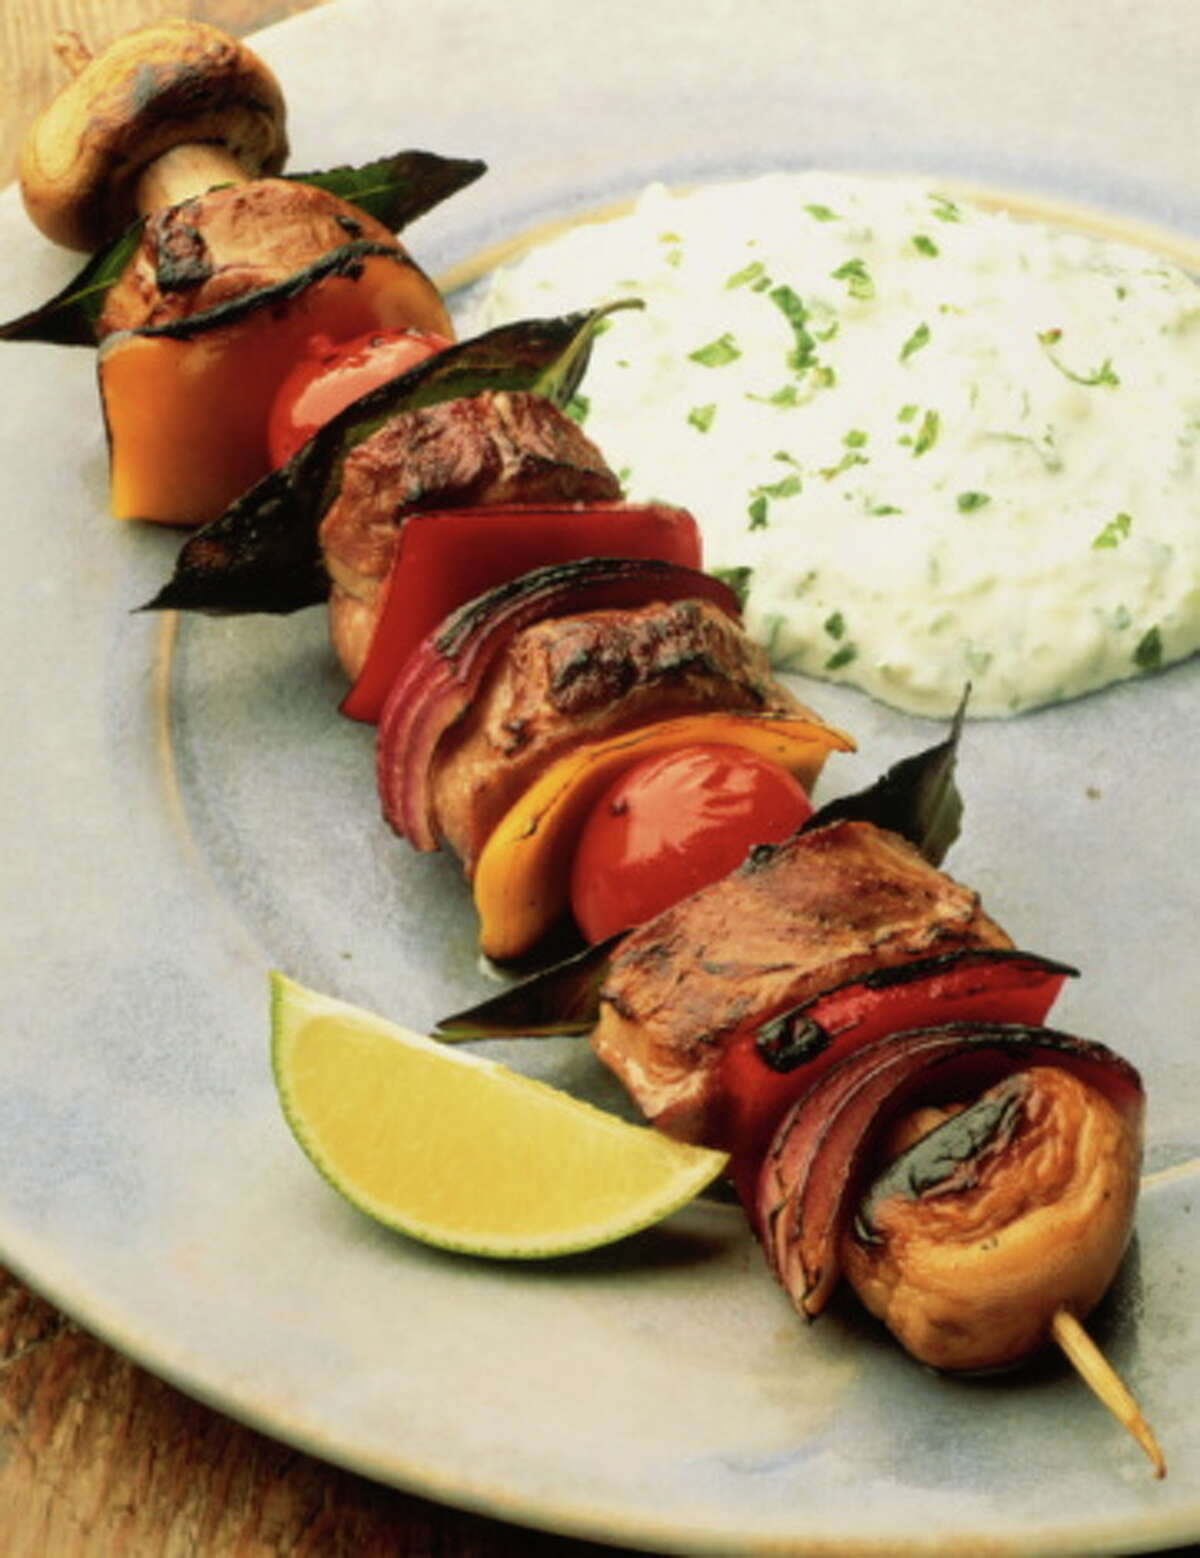 A kebab is an easier and healthier option for the grill.